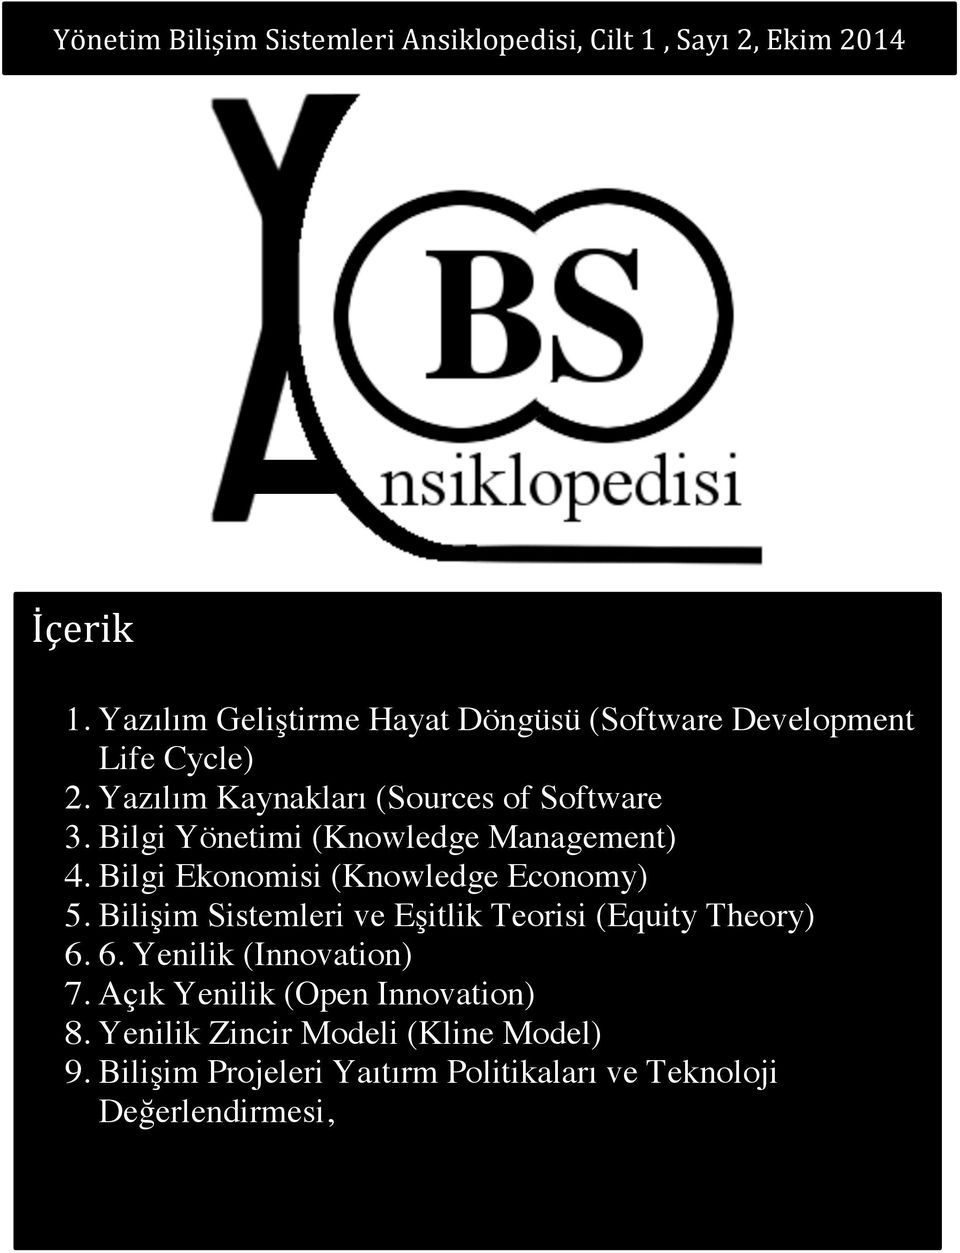 Bilgi Yönetimi (Knowledge Management) 4. Bilgi Ekonomisi (Knowledge Economy) 5.